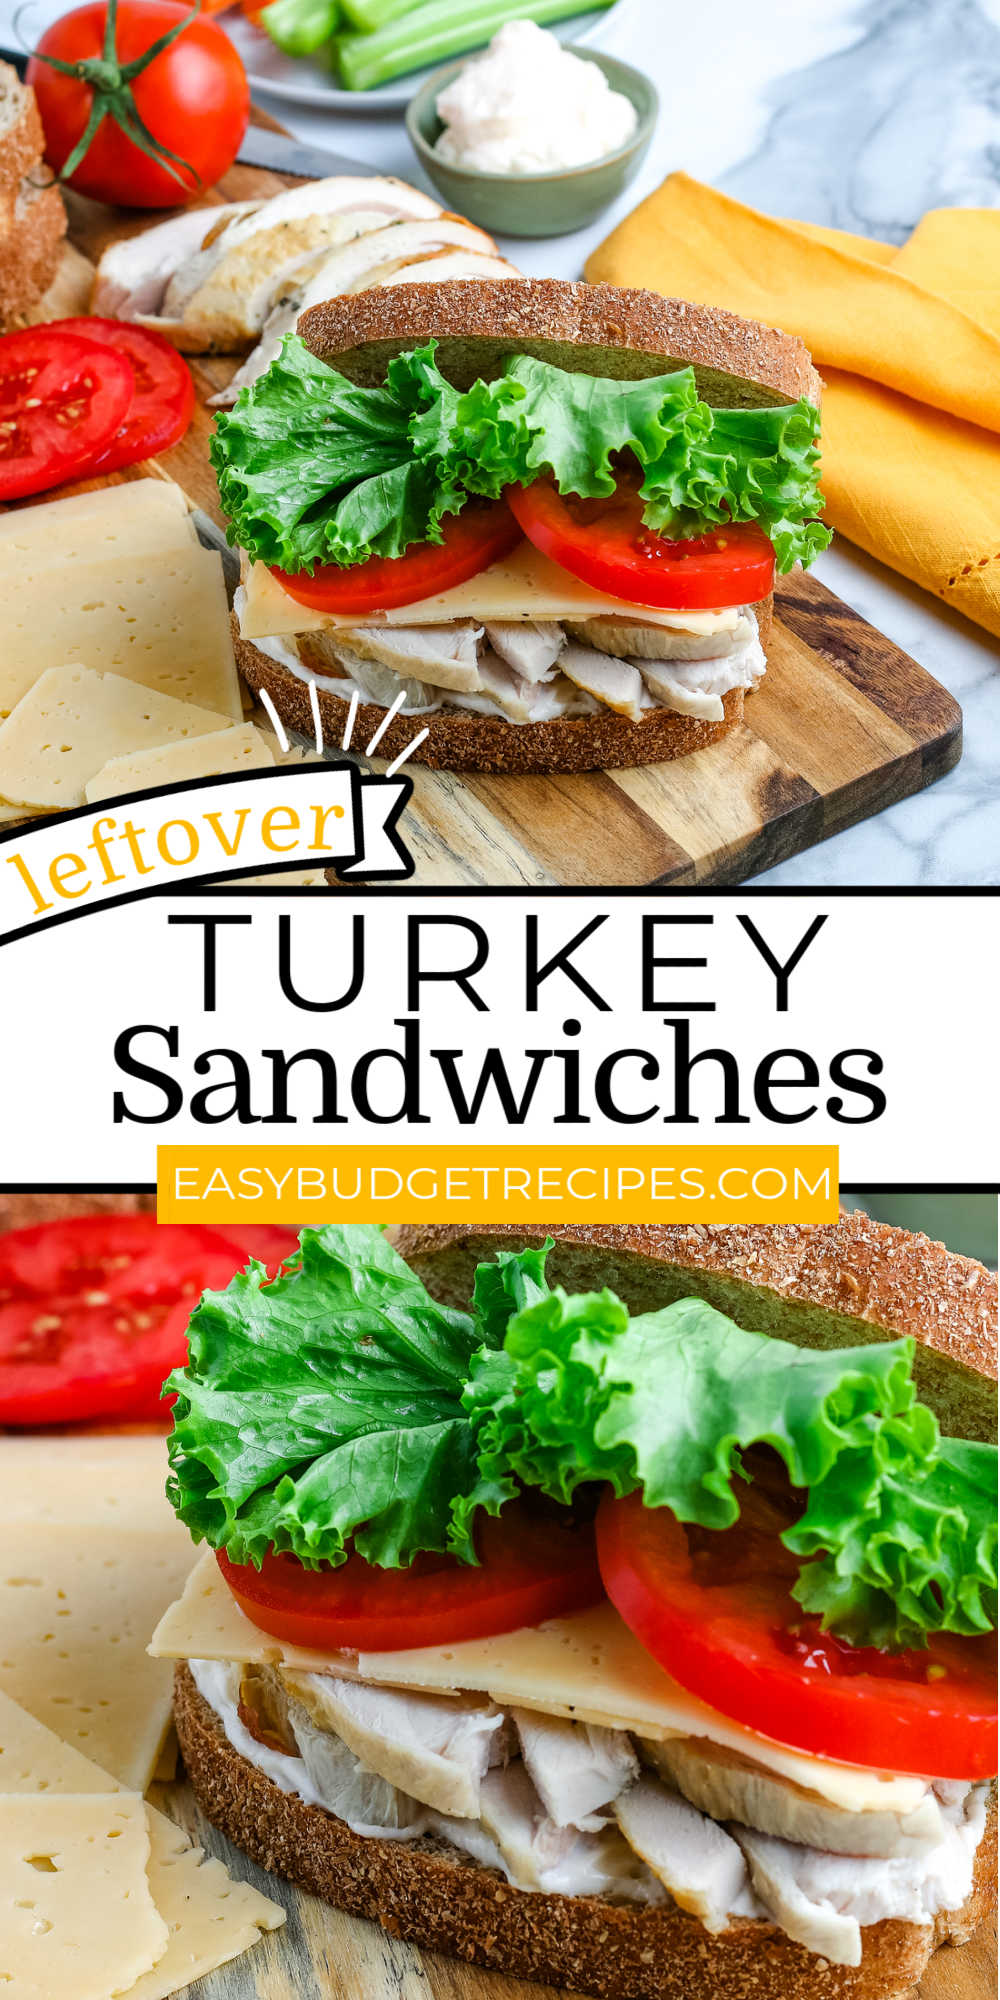 Leftover Turkey Sandwiches are a Thanksgiving staple! They're perfect for lunch the next day and can be made to fit anyone's tastes.  via @easybudgetrecipes